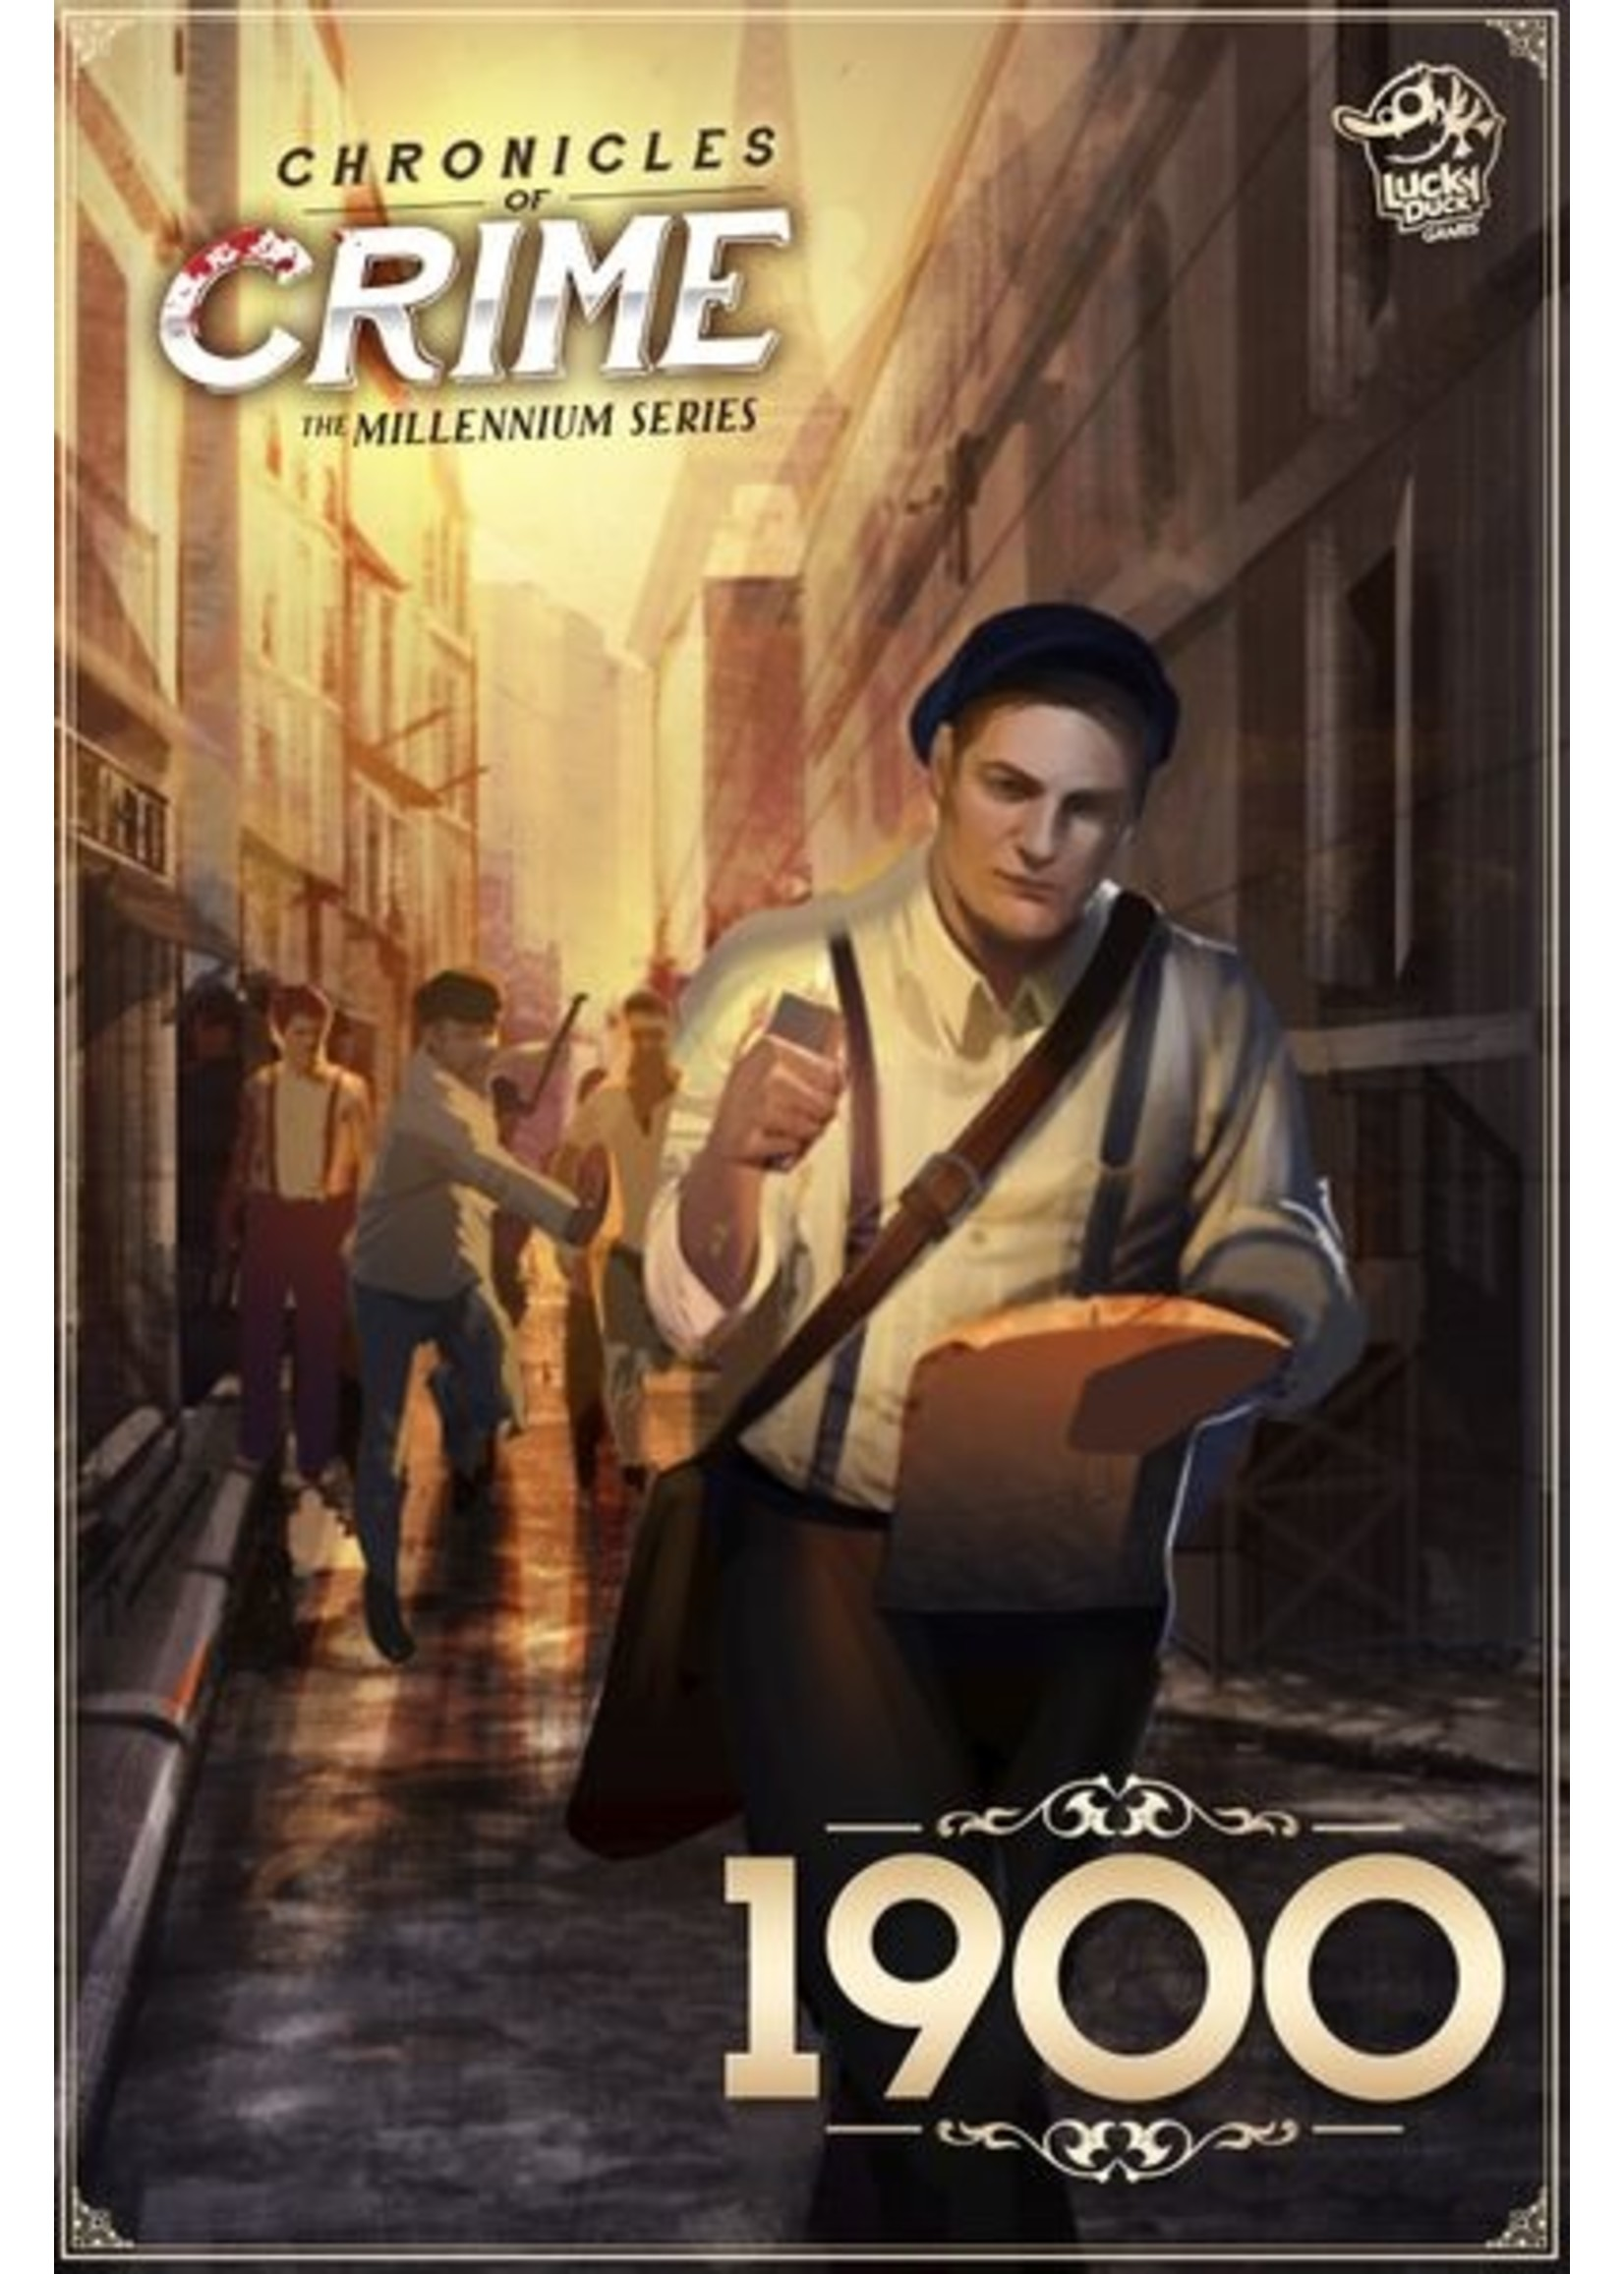 Chronicles of Crime: 1900